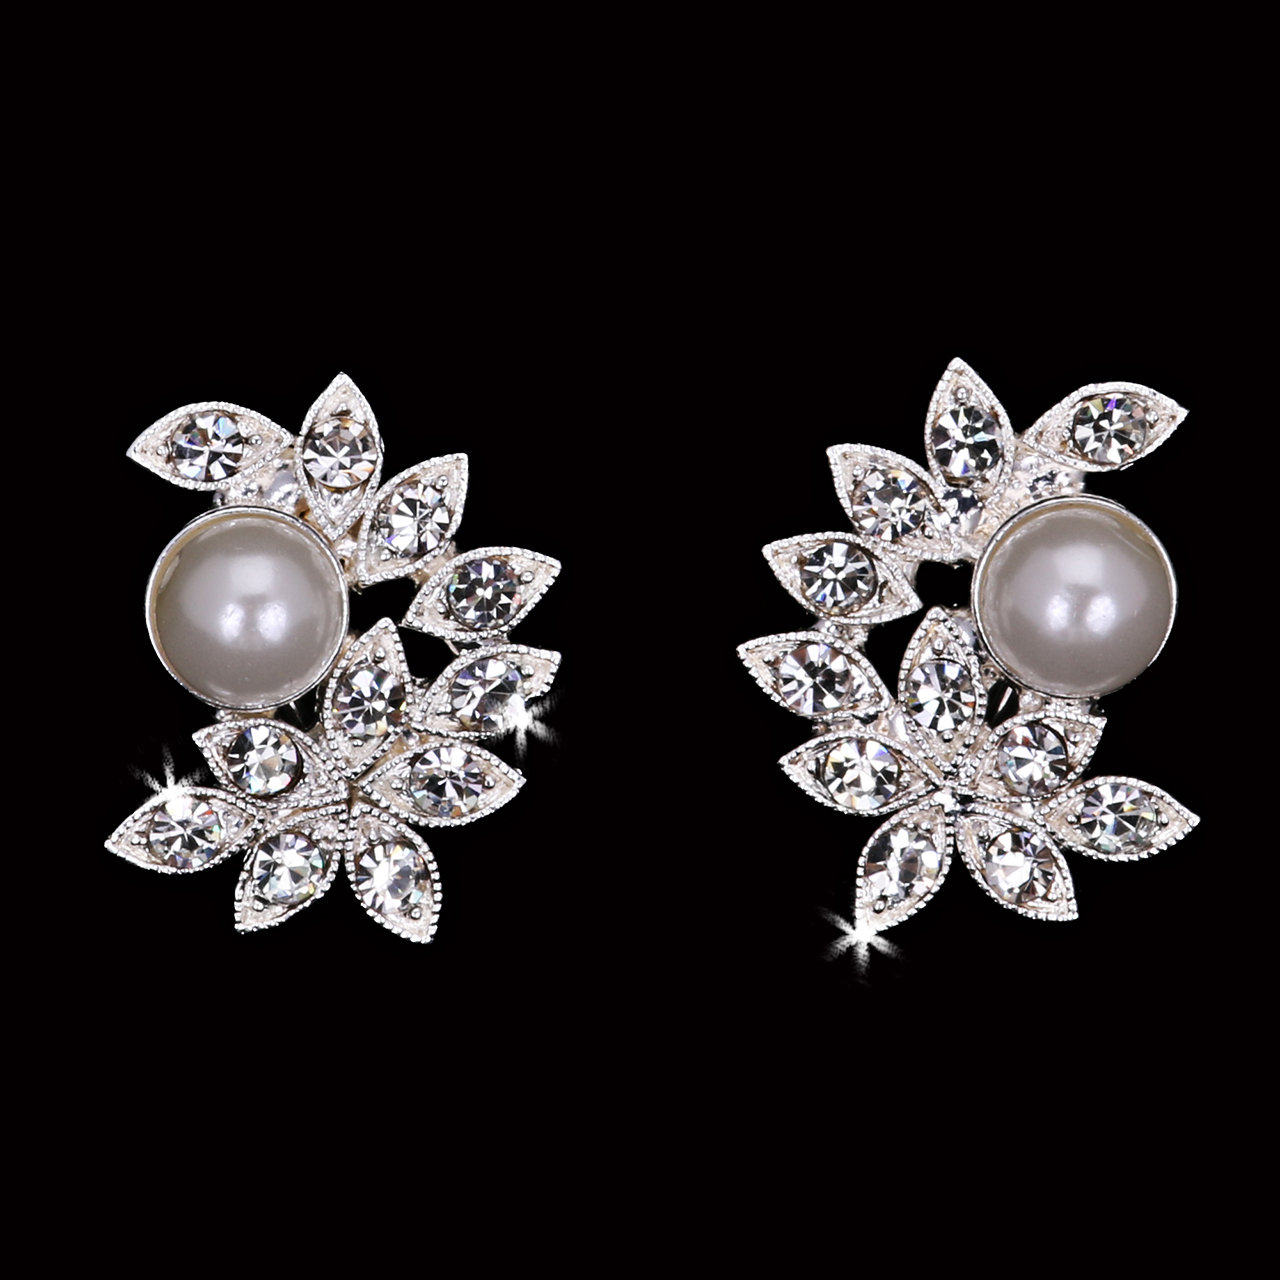 Pearl and Rhinestone Post Earrings